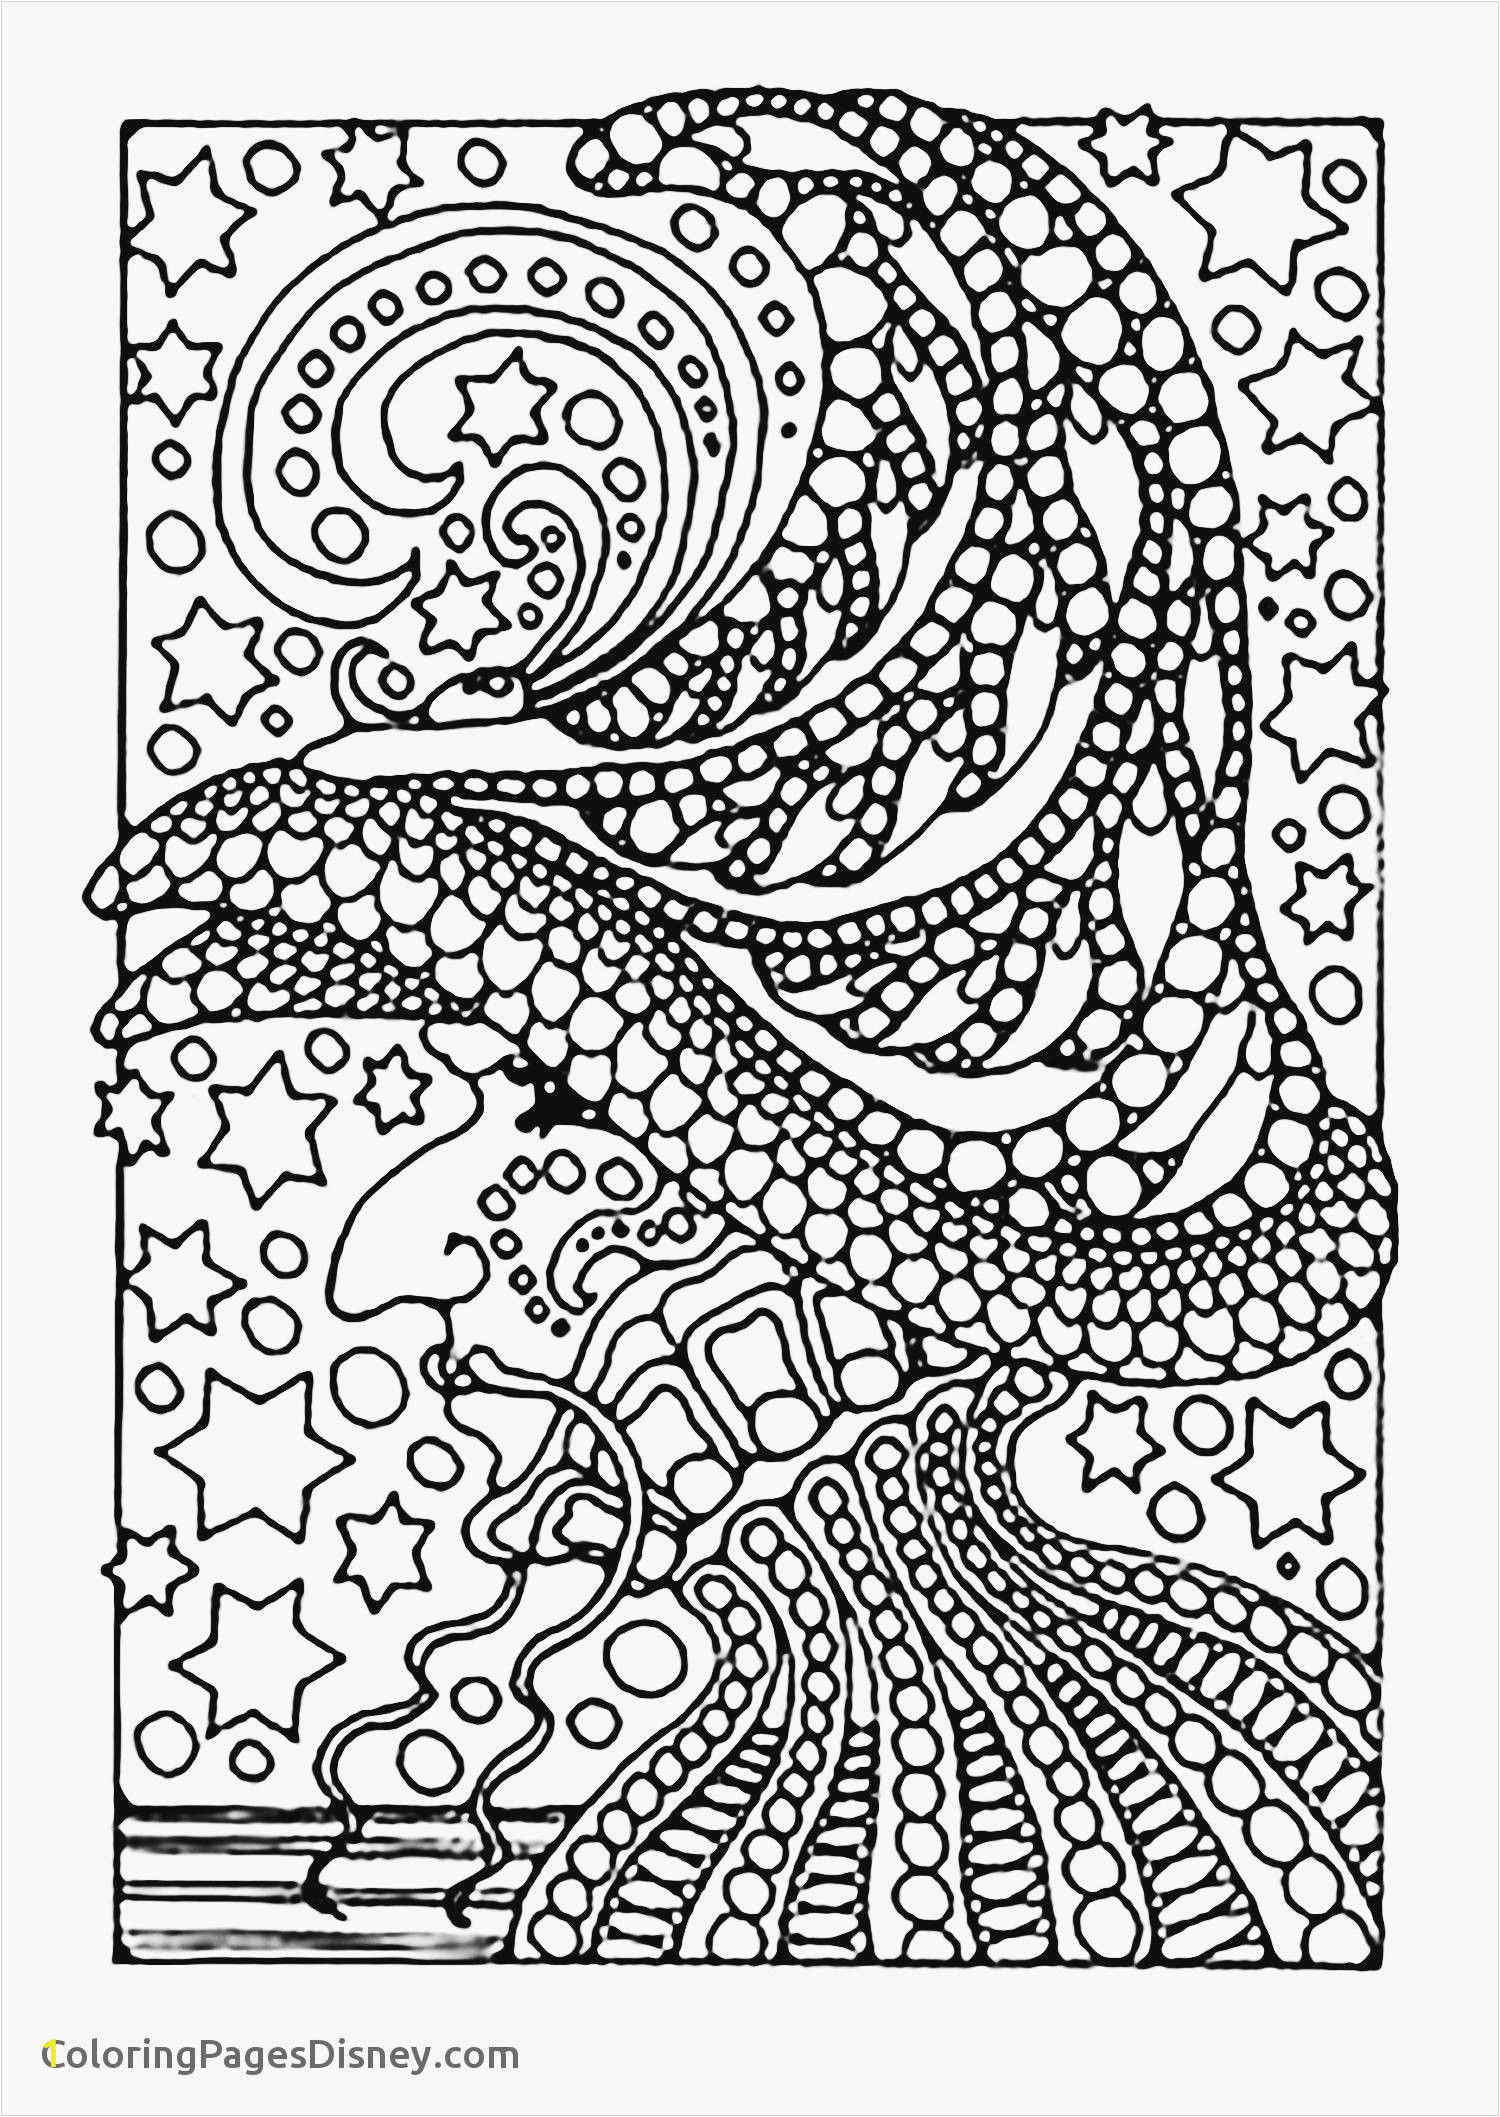 disney coloring pages for adults online art printable coloring pages for spring di 2020 of disney coloring pages for adults online